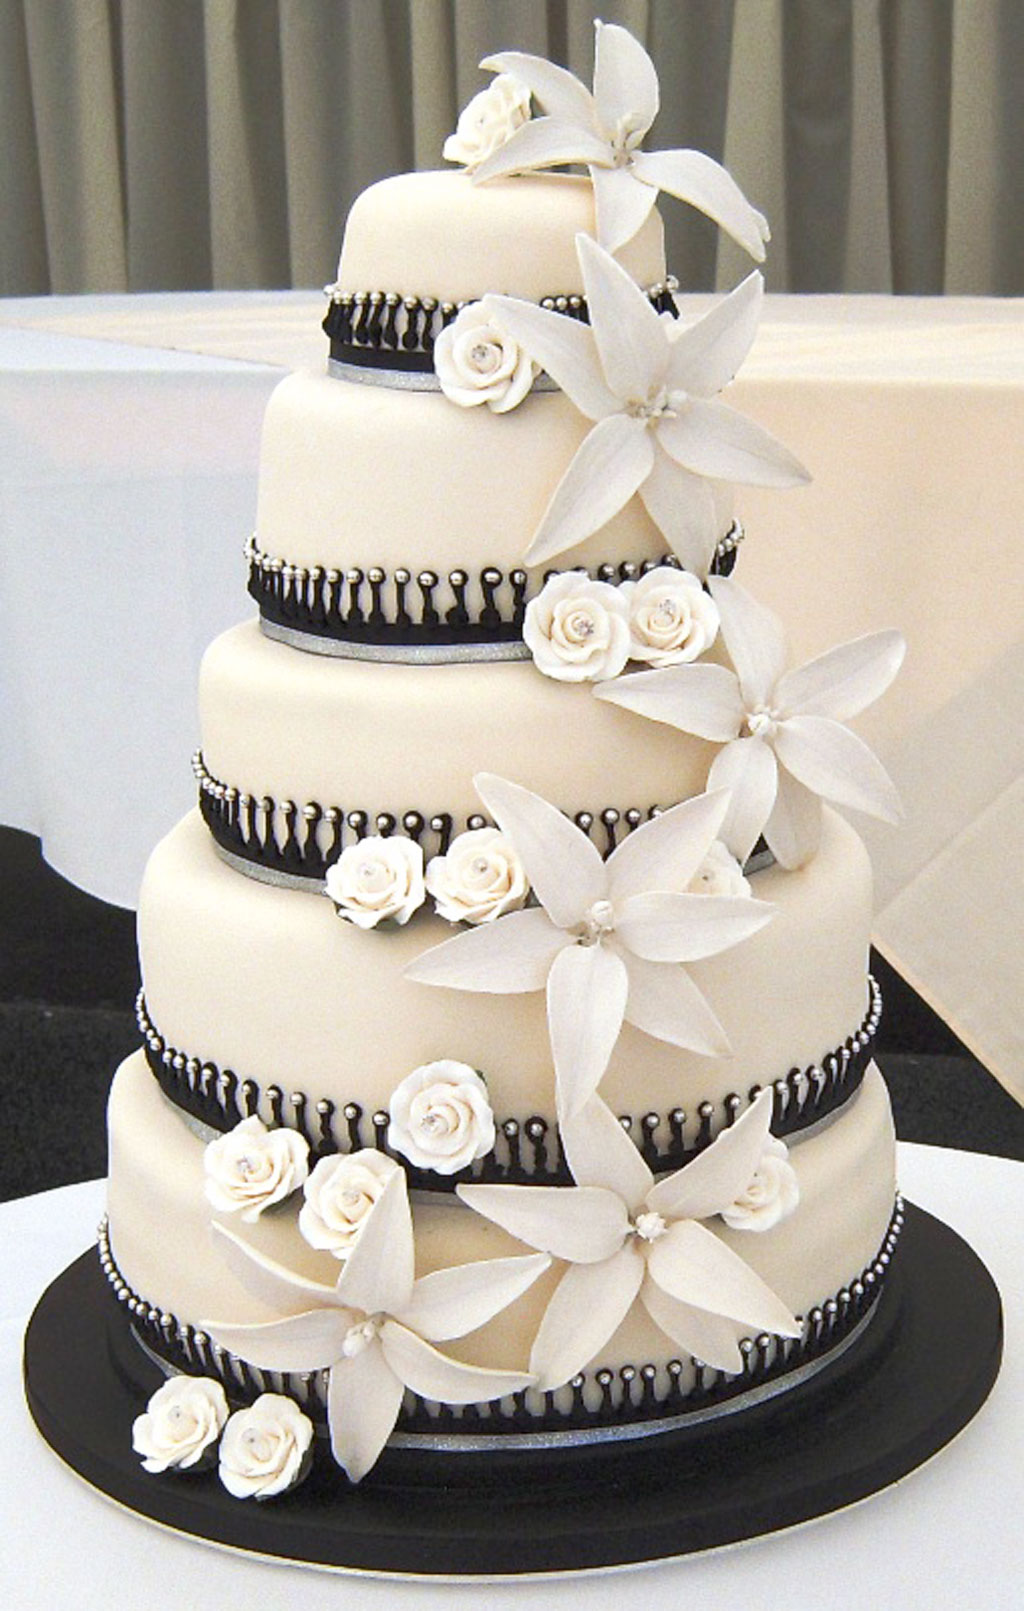 black and white wedding cake photos black white wedding cake designs wedding cake cake ideas 11845